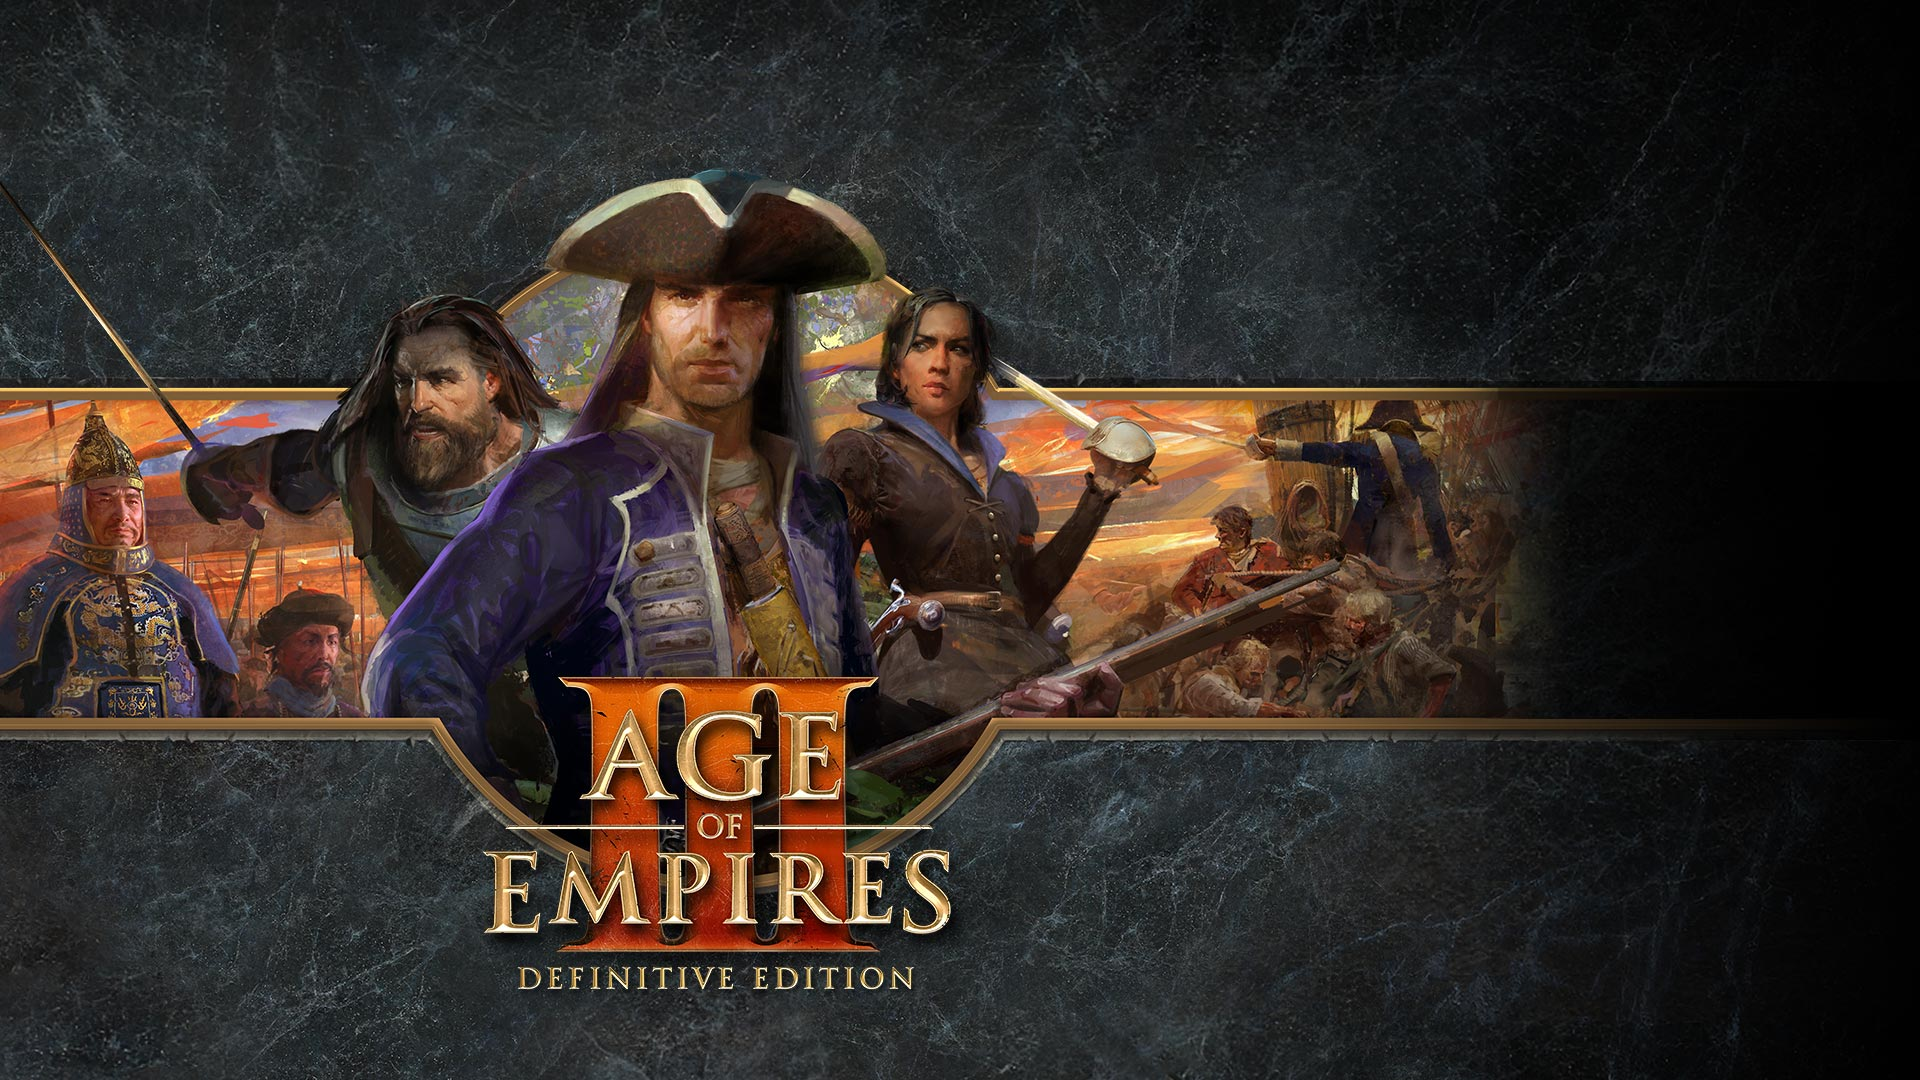 Age of Empires III: Definitive Edition、ポーズを取るキャラクター